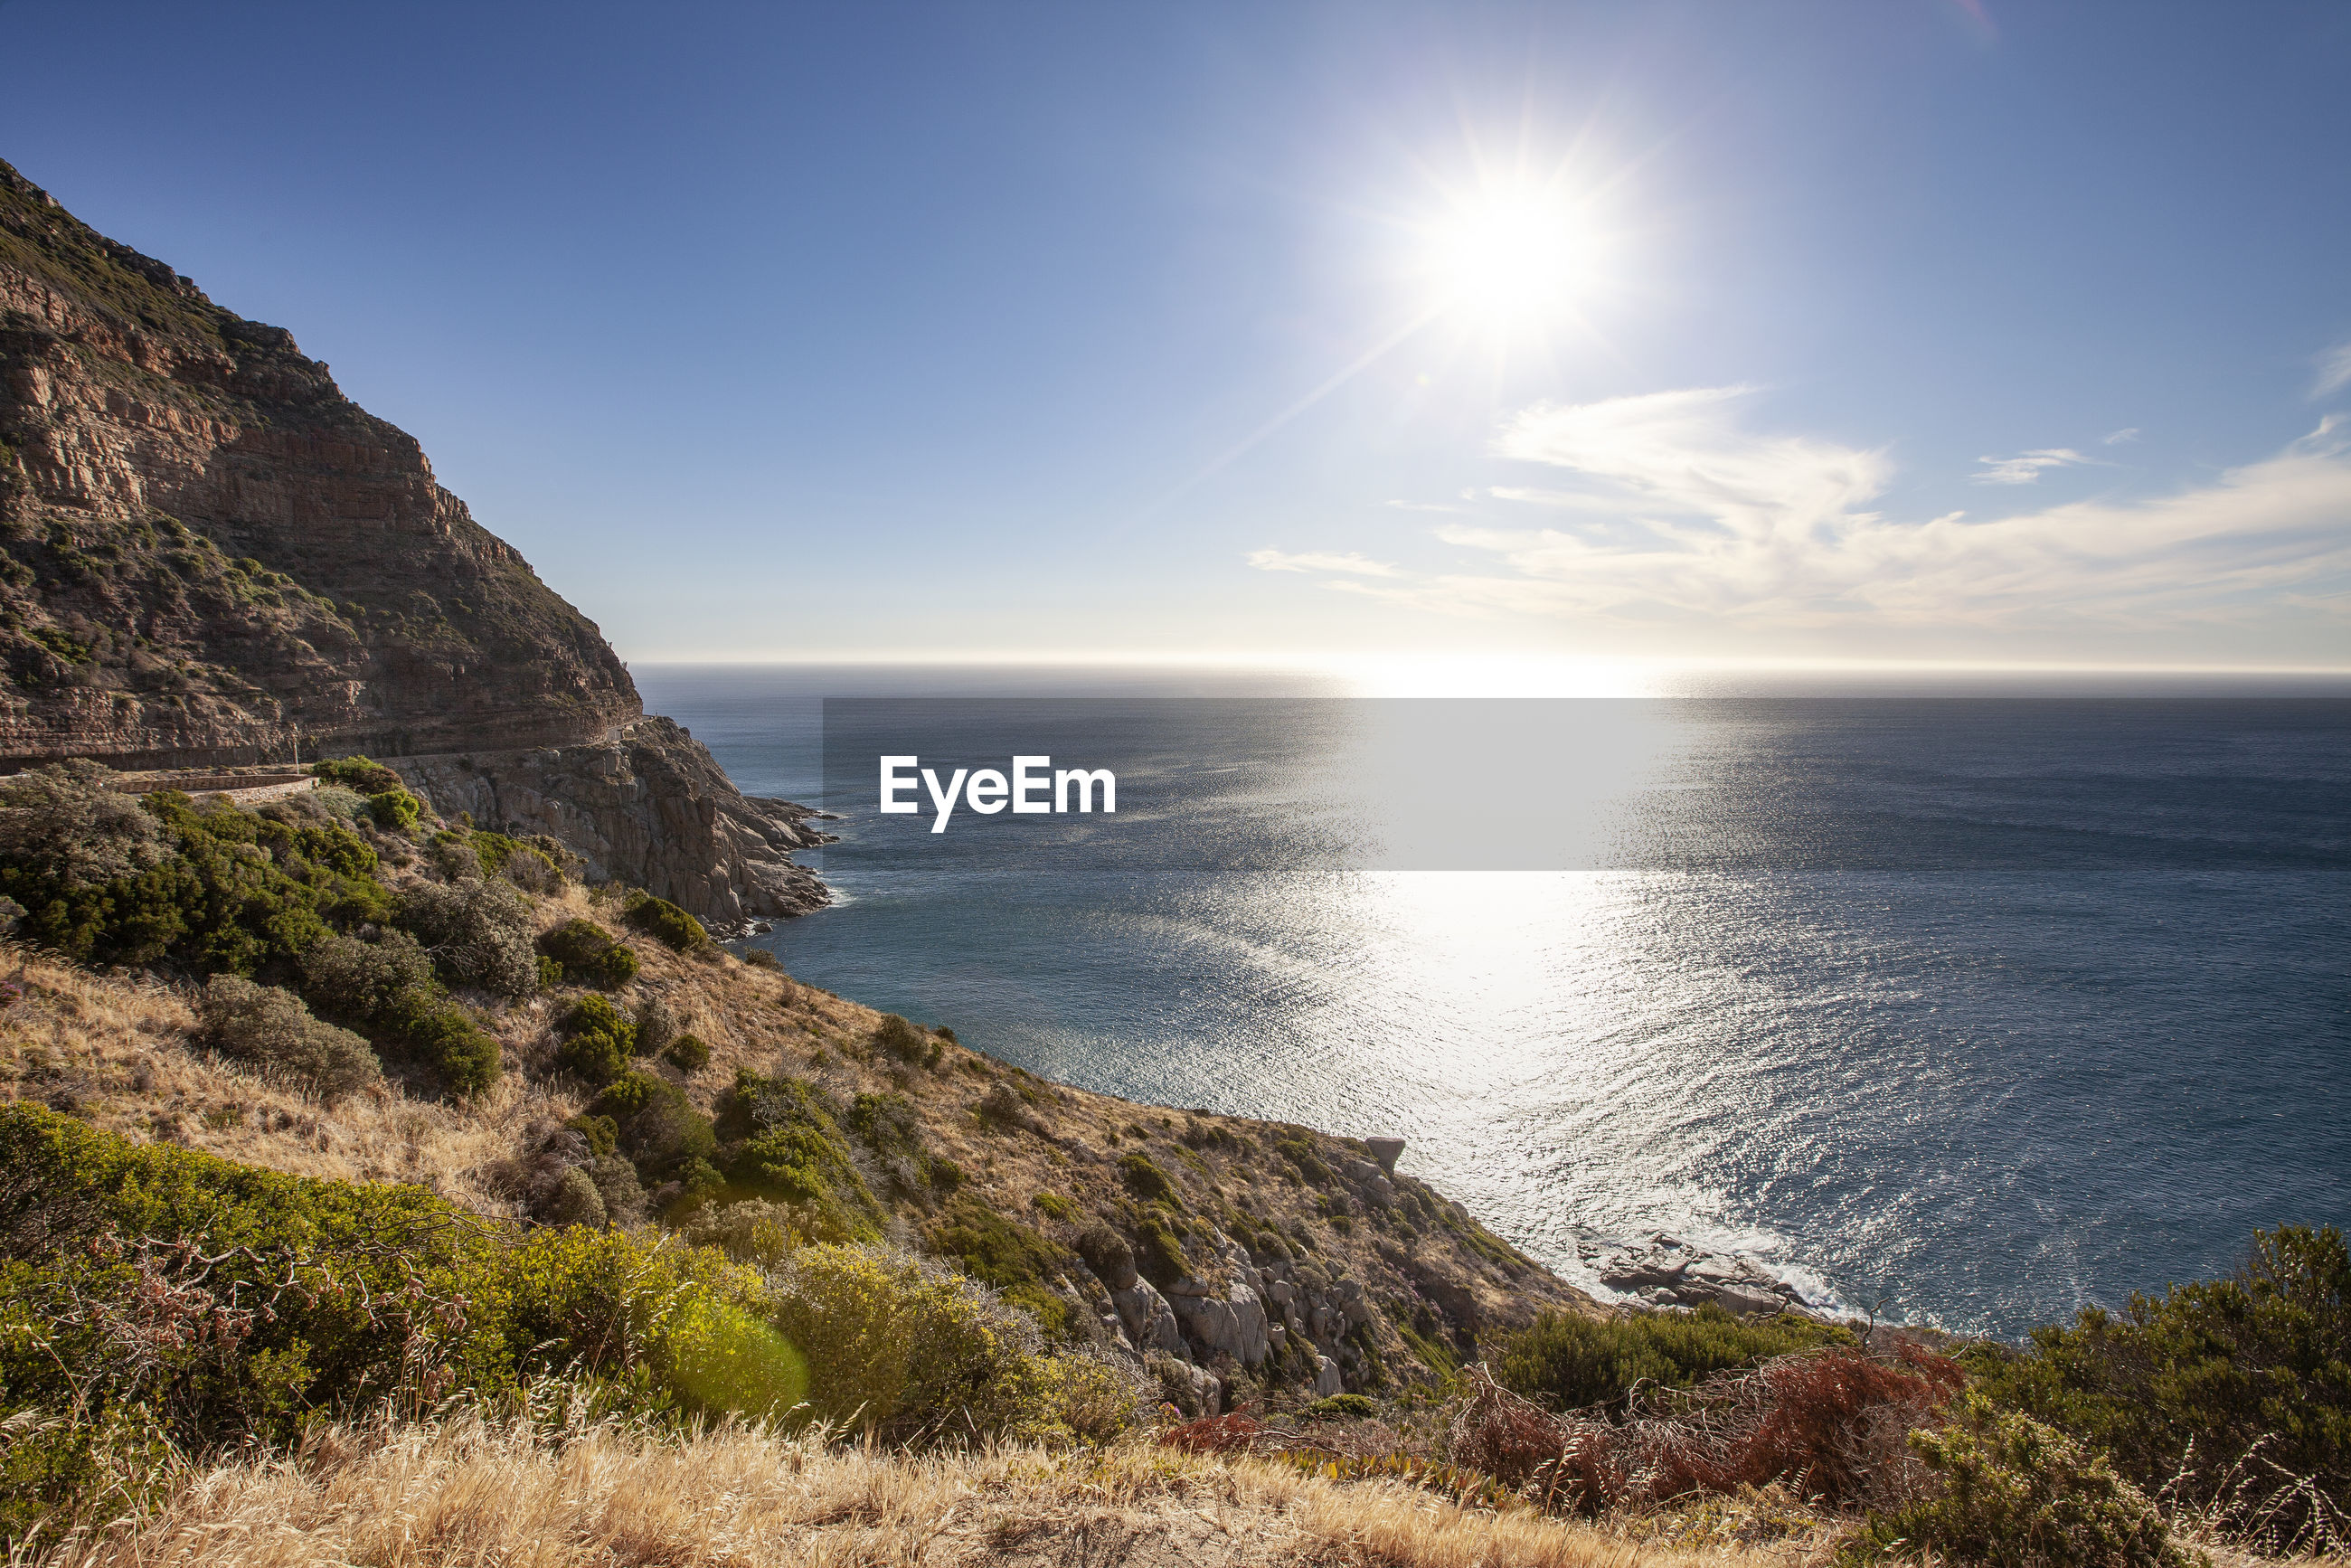 SCENIC VIEW OF SEA AGAINST BRIGHT SKY